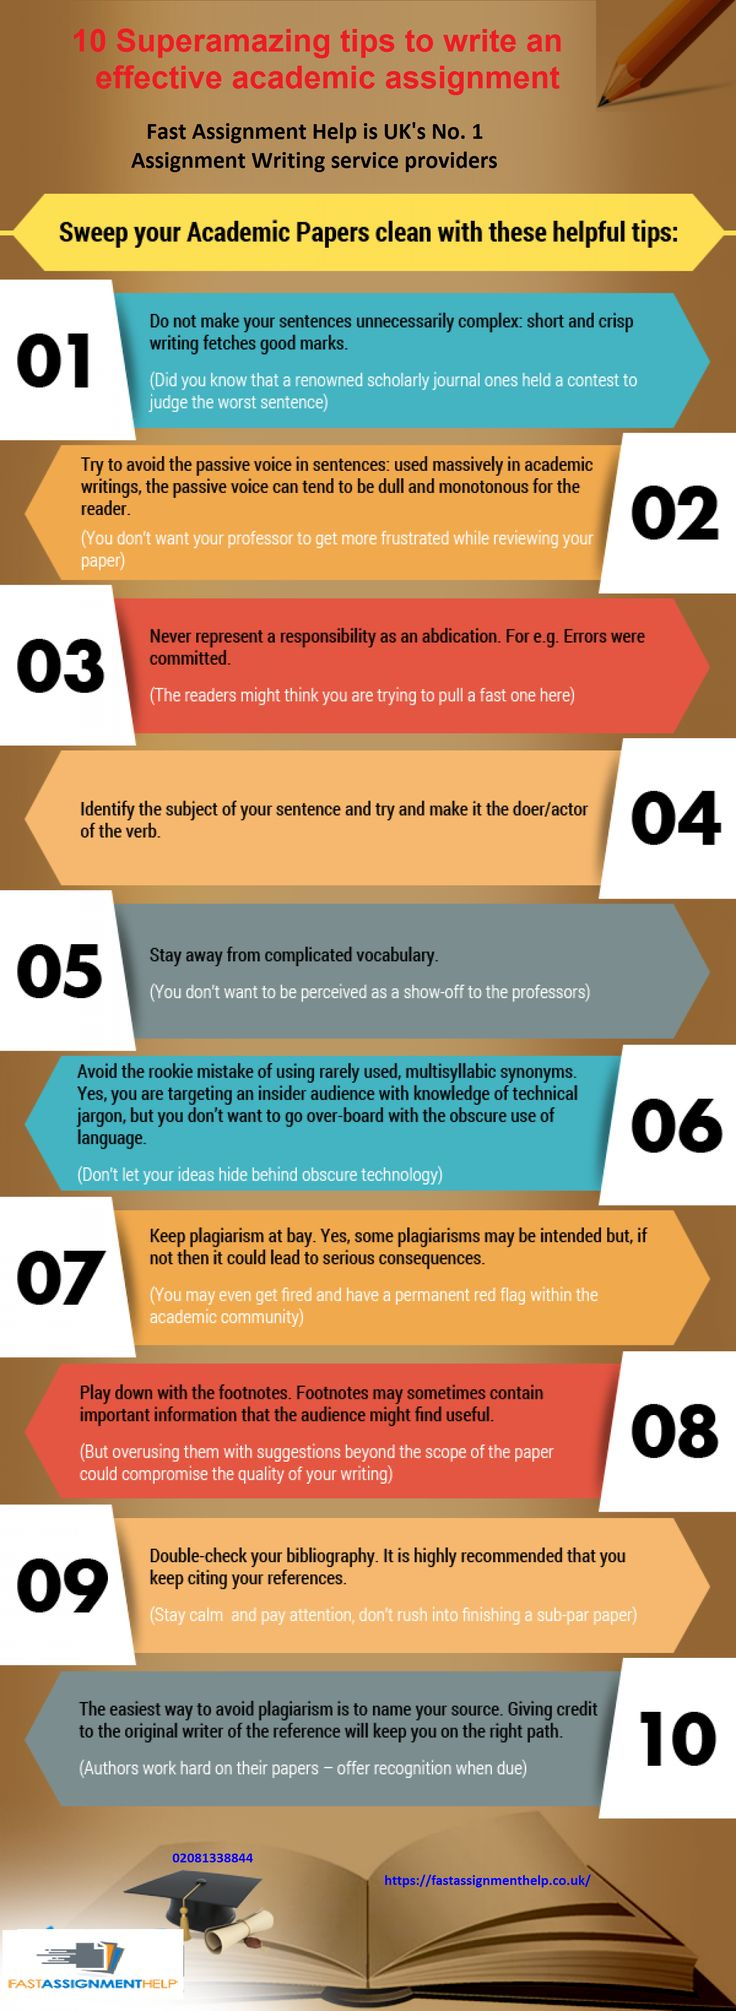 assignment online assignment on marketing tma tutore mark  get assignments done online images about assignment writing infographics